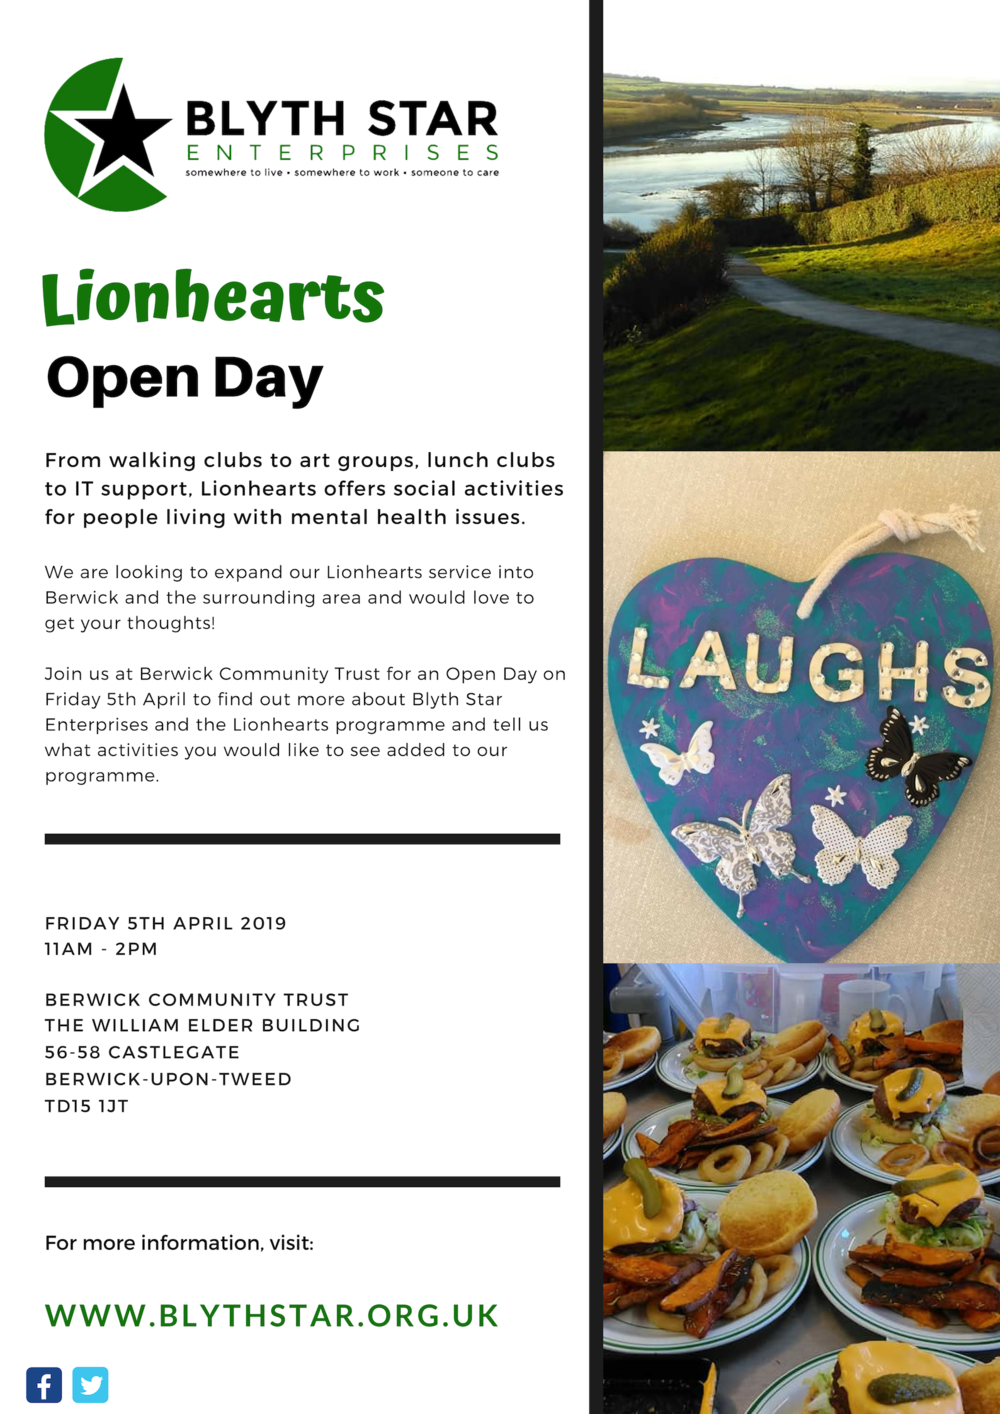 Lionhearts open day poster